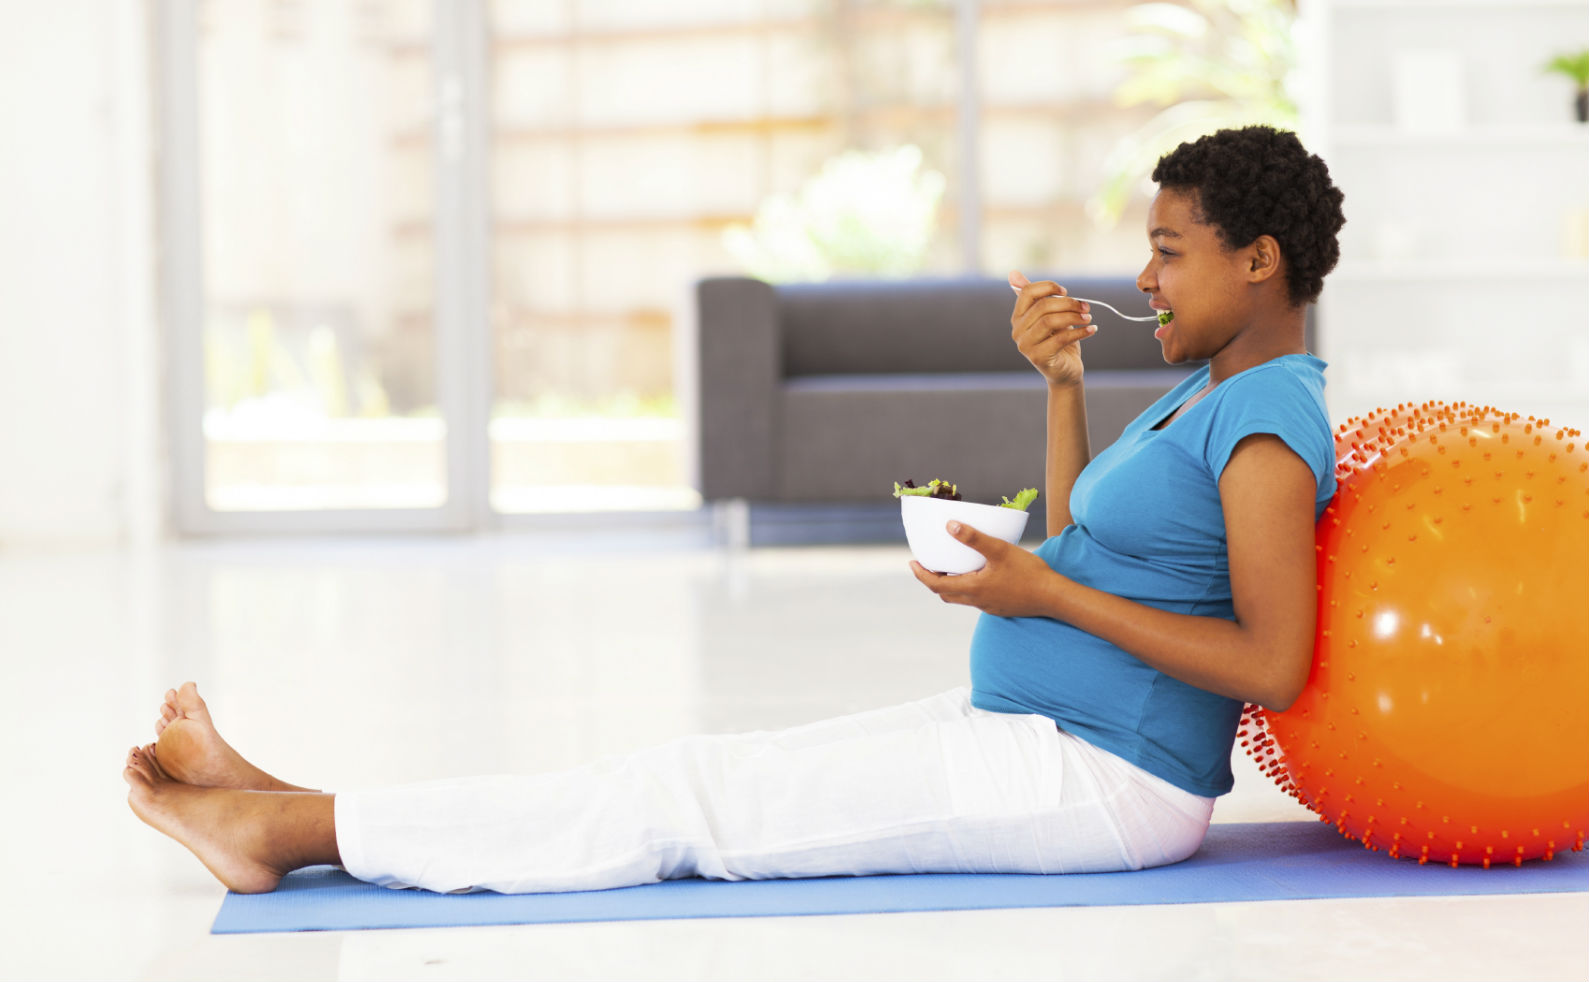 pregnant-african-american-woman-eating-healthy-salad-on-exercise-mat-FINAL